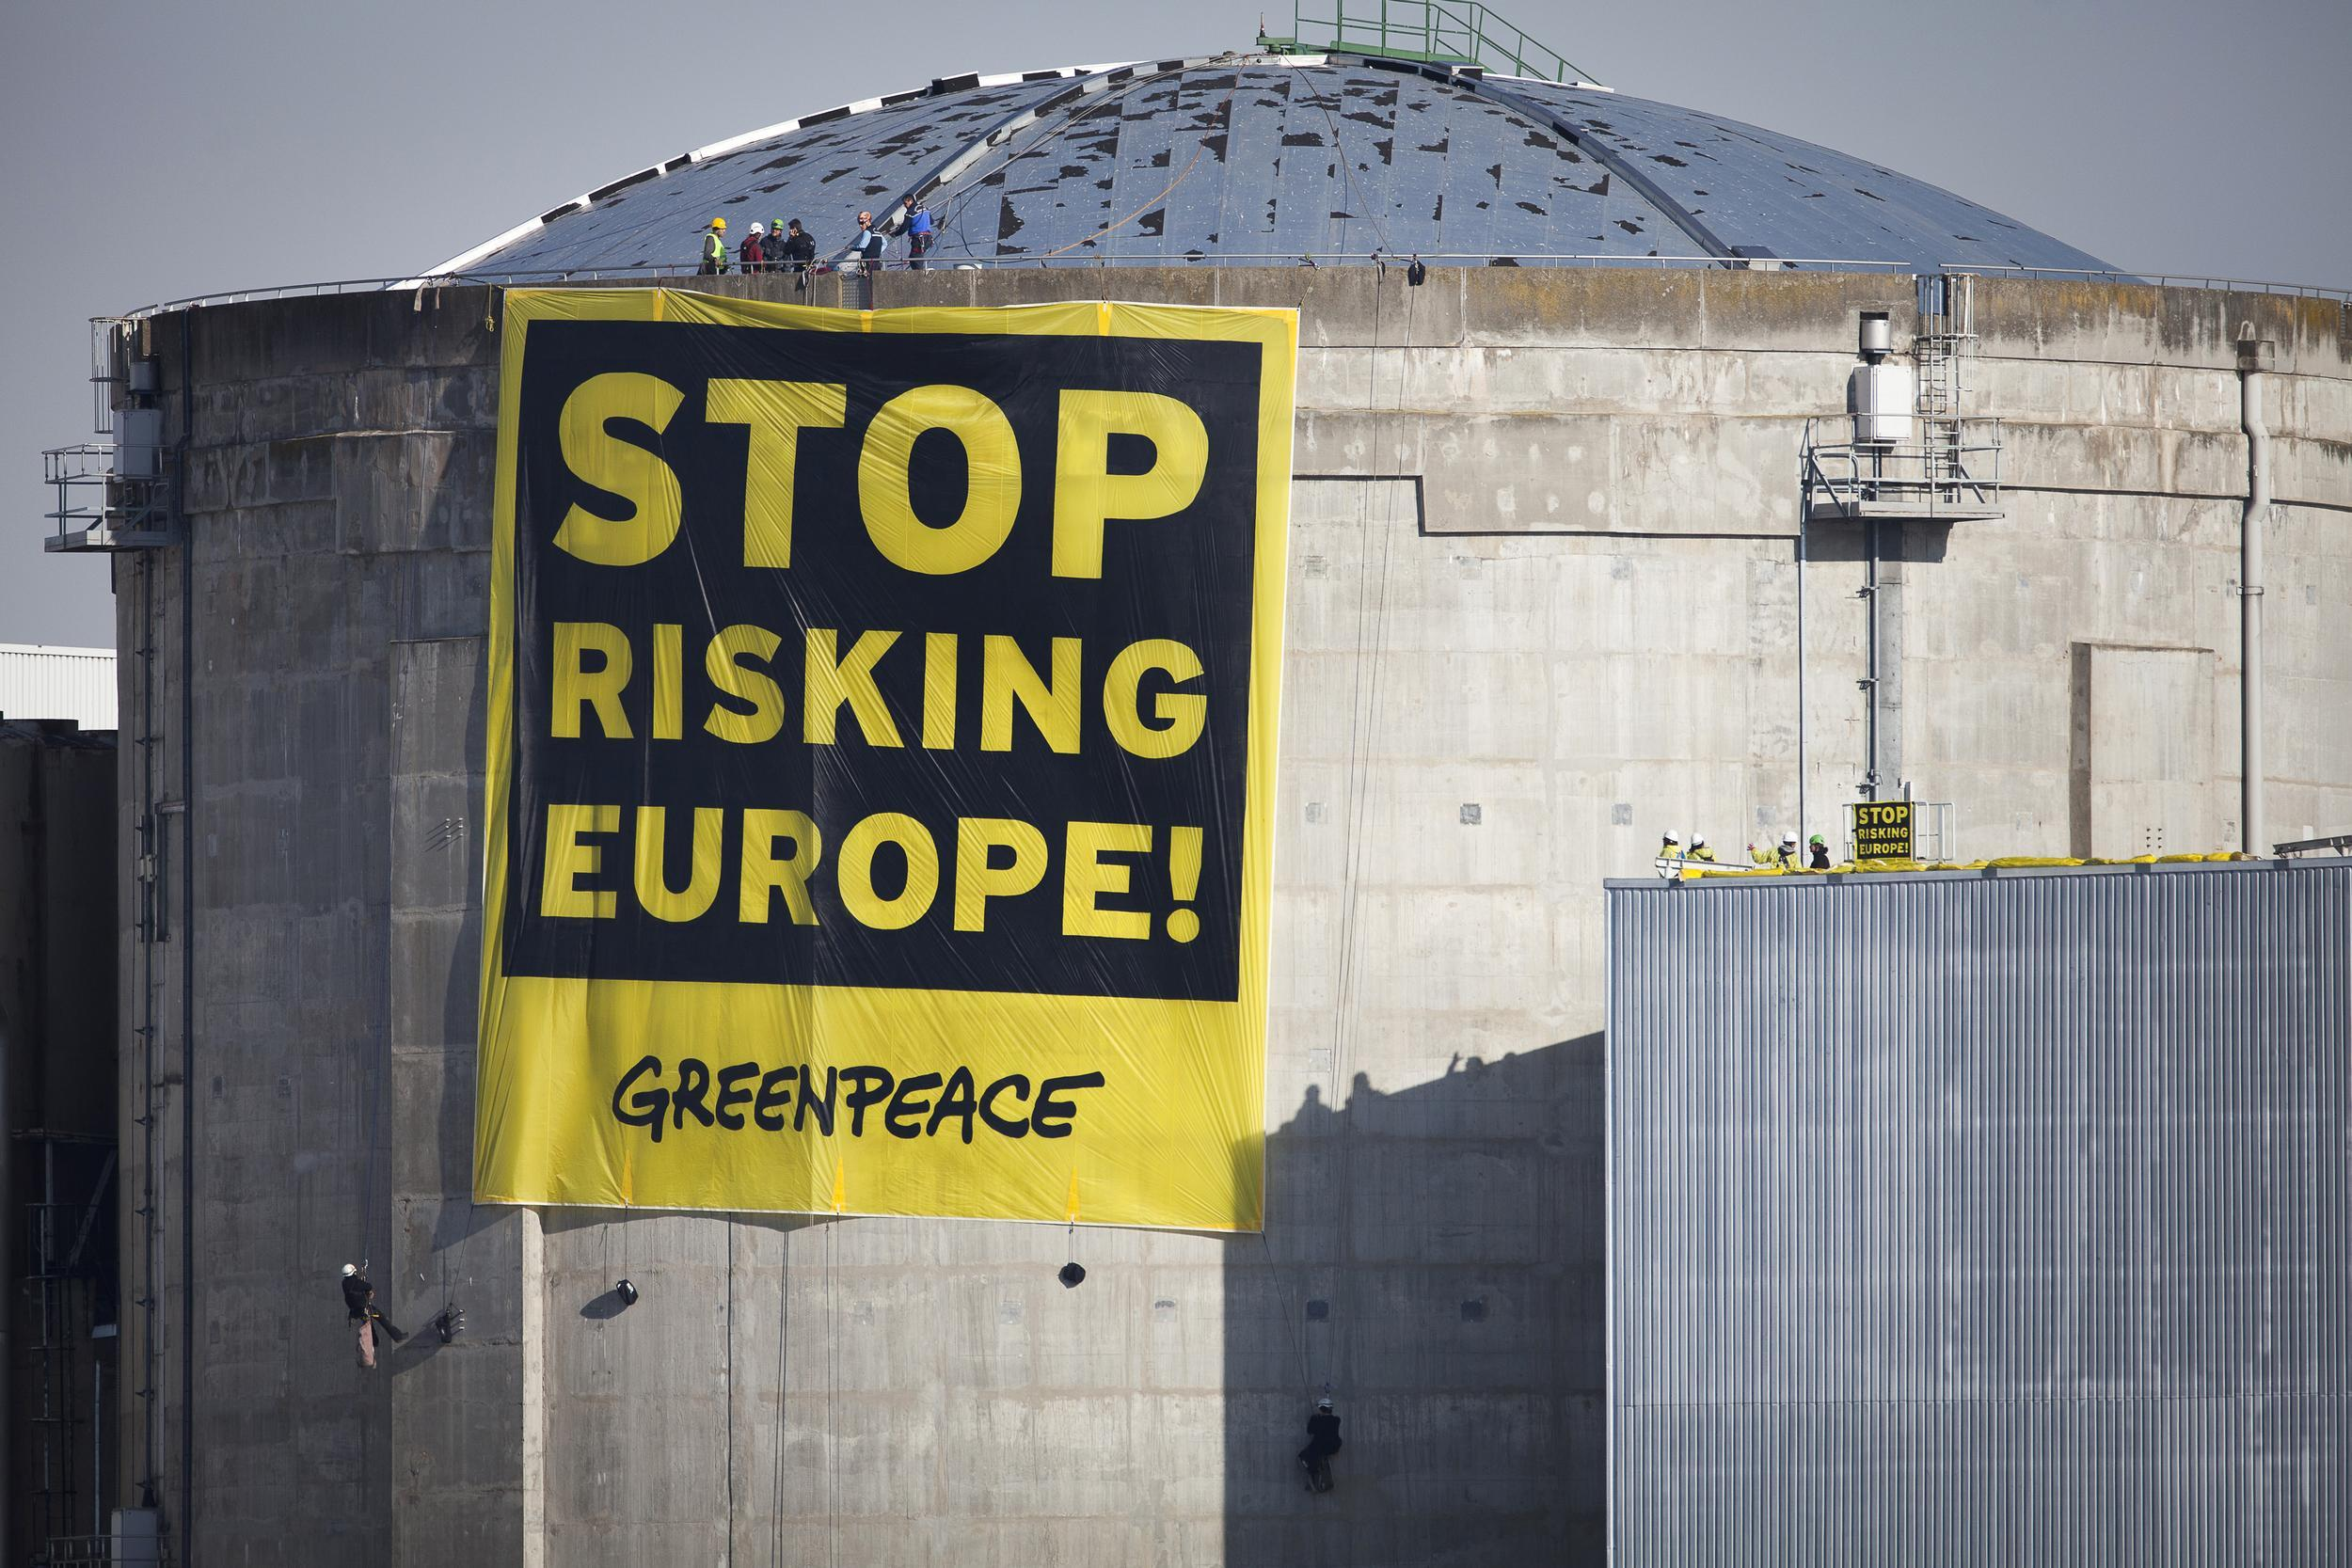 "In this photo provided by environmental group Greenpeace, activisits hang a banner reading ""Stop Risking Europe"" at the Fessenheim nuclear power plant, eastern France, Tuesday, March 18, 2014. More than 60 Greenpeace activists have occupied a nuclear plant in eastern France to protest the nation's reliance on atomic power. In a statement Greenpeace France said the activists had come from 14 countries across Europe ""to denounce the risk to Europe from France's nuclear power,"" and to promote a transition to other energy sources. (AP Photo/Daniel Mueller, Greenpeace) NO ARCHIVE"